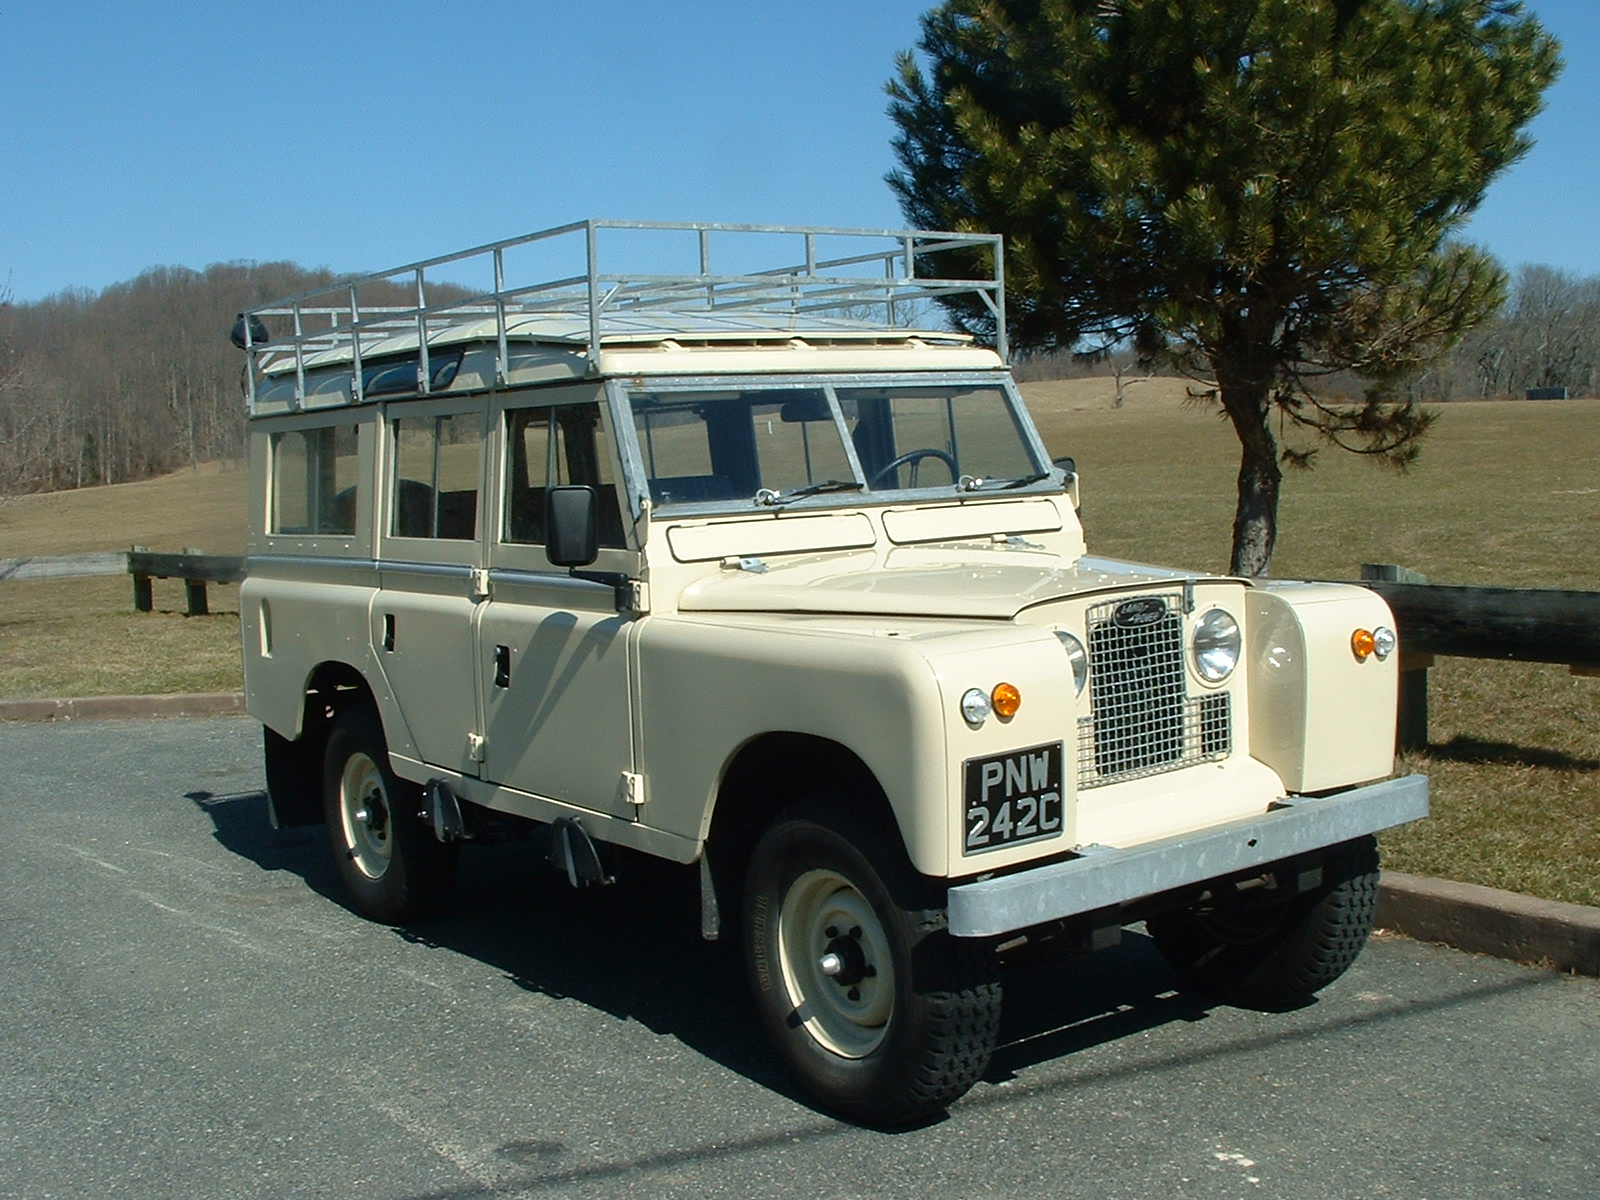 rovers rover for land to the usa landrover present redesigned sale car will sold ptc defender in completely be